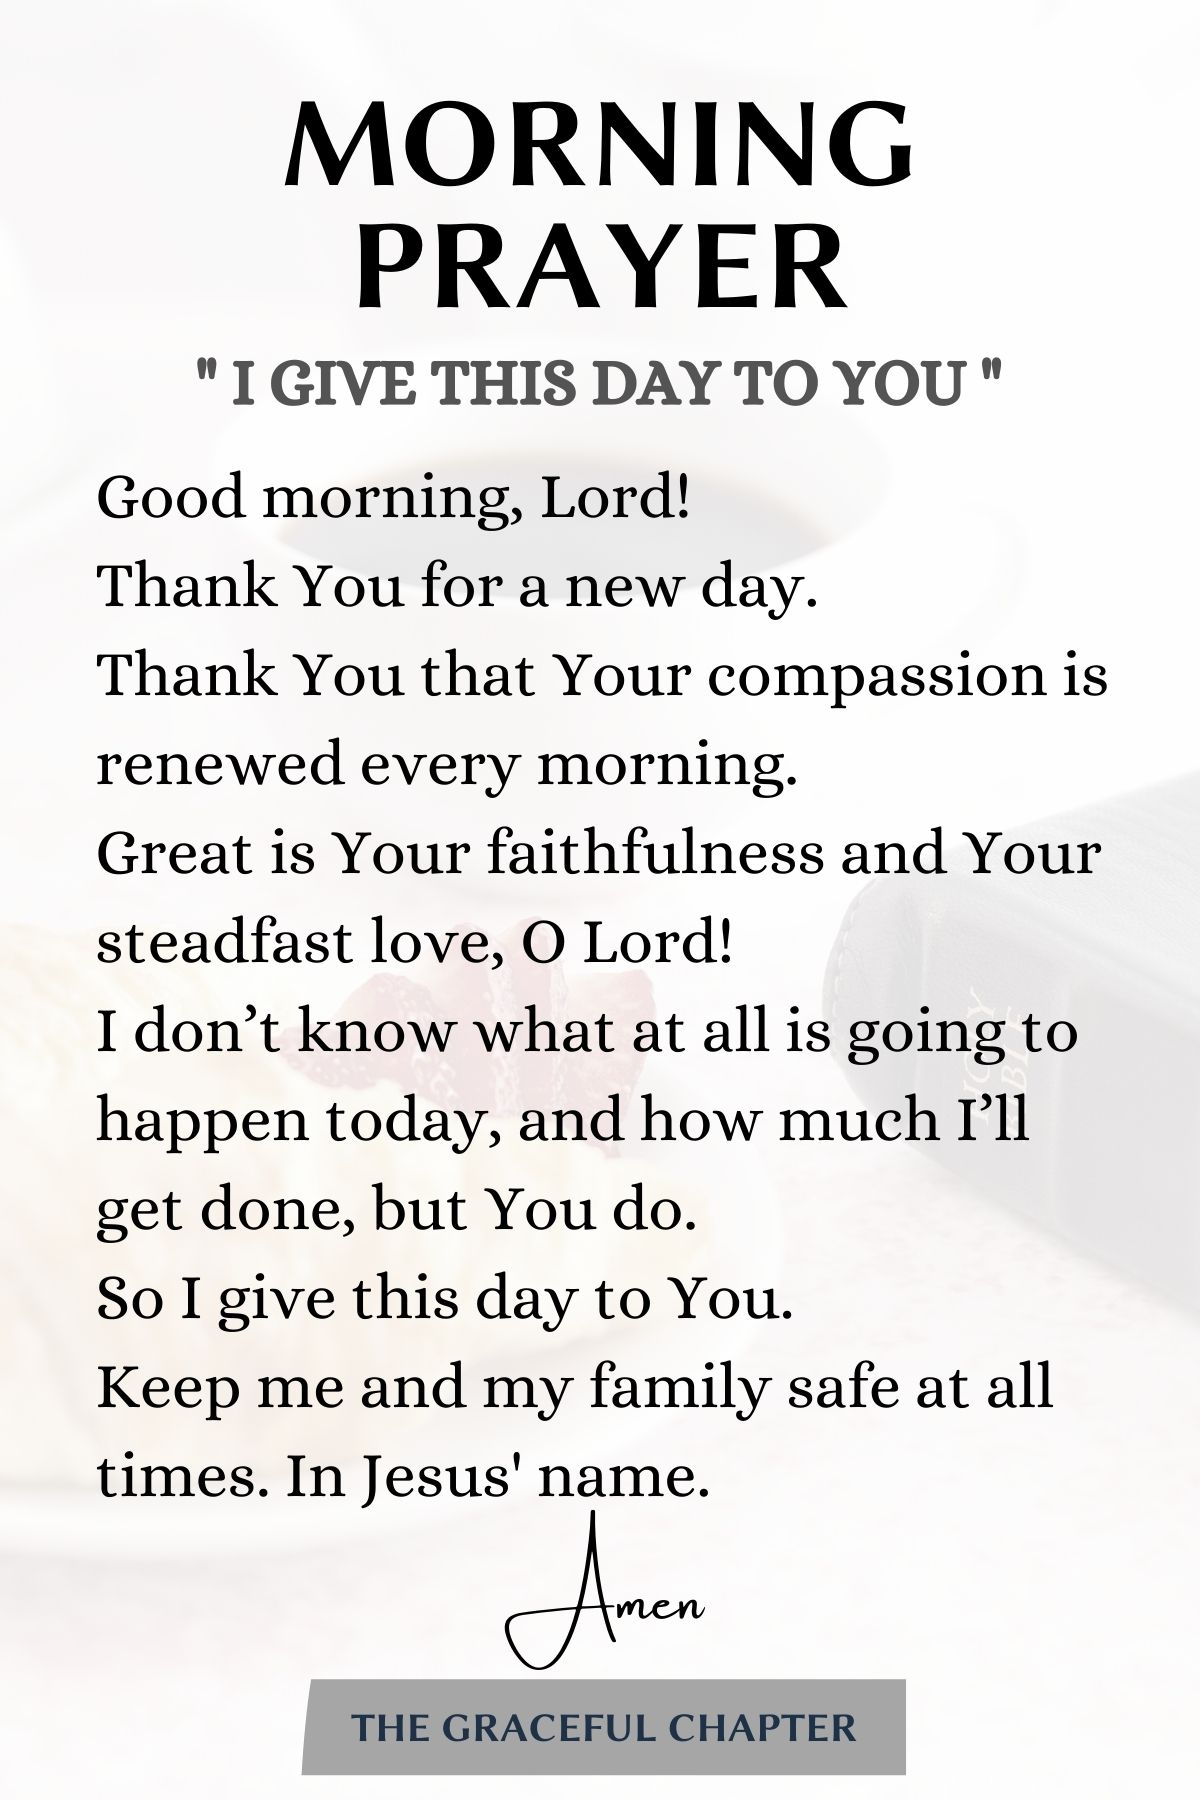 morning prayer- I give this day to You